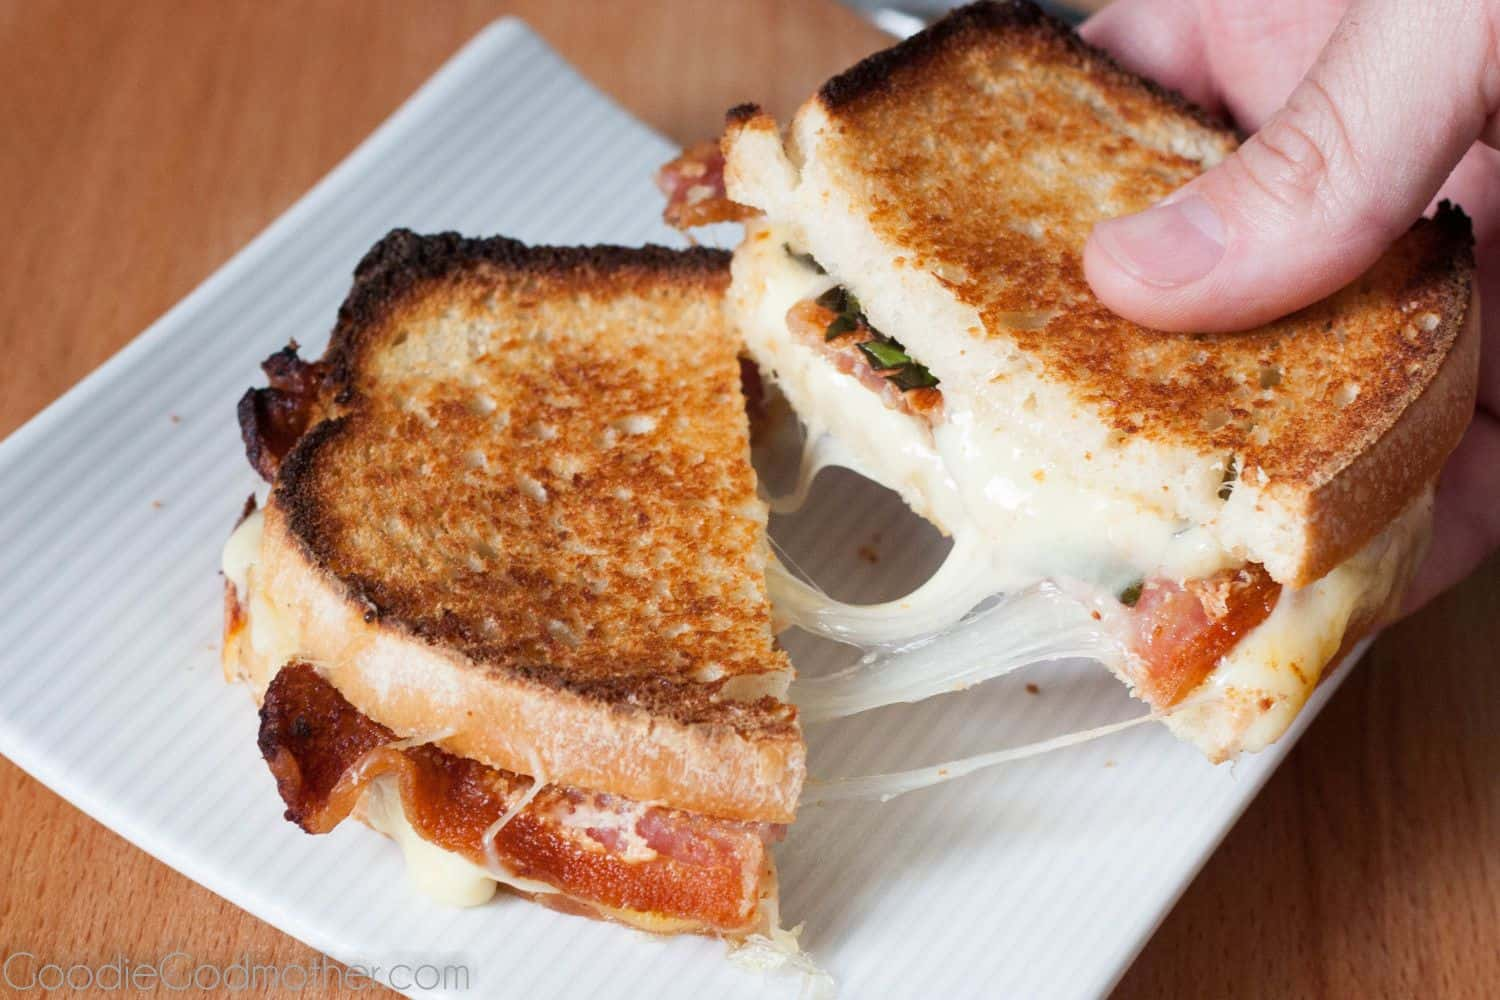 Basil, Bacon, Mozzarella Grilled Cheese. A BBMT? No matter what you call it, it's delicious! Recipe on GoodieGodmother.com